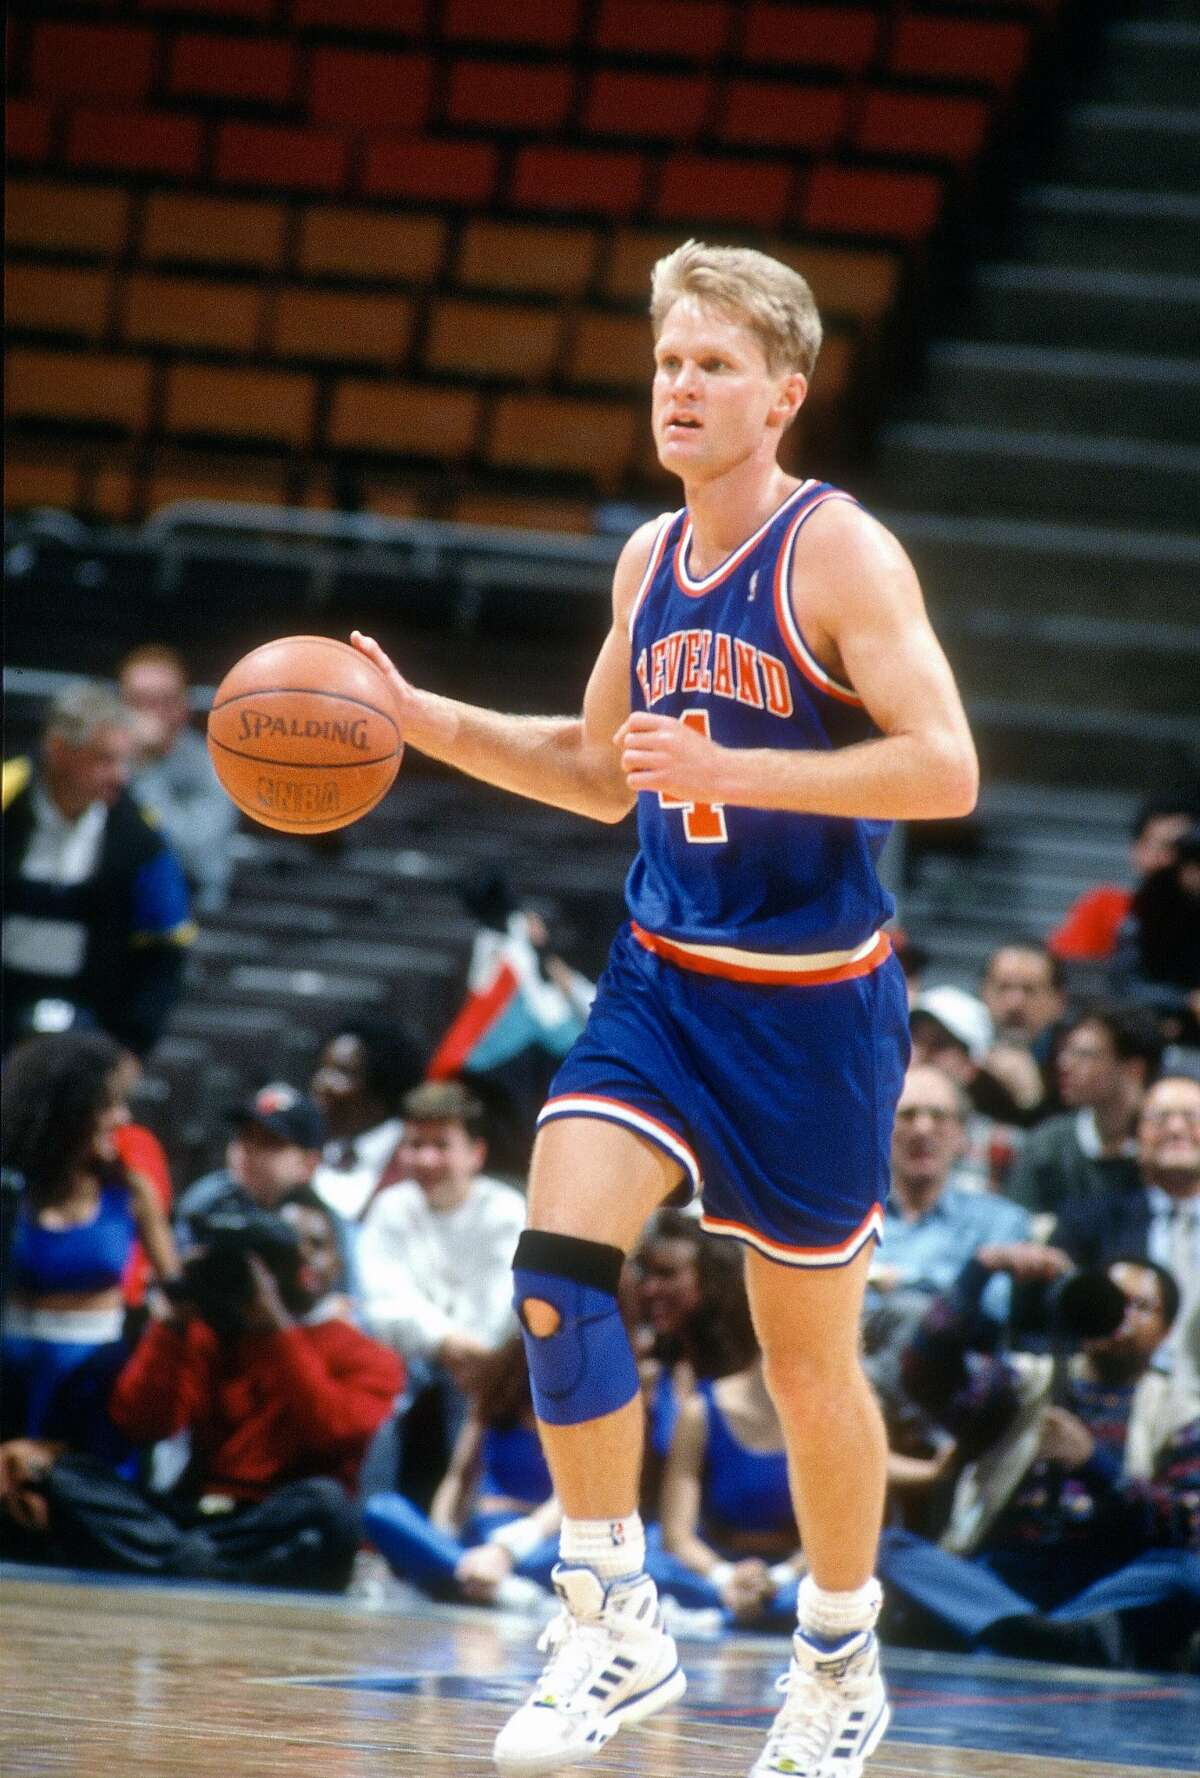 MILWAUKEE, WI - CIRCA 1991: Steve Kerr #5 of the Cleveland Cavaliers dribbles the ball up court against the Milwaukee Bucks during an NBA basketball game circa 1991 at the MECCA Arena in Milwaukee, Wisconsin. Kerr played for the Cavaliers from 1989-92. ~